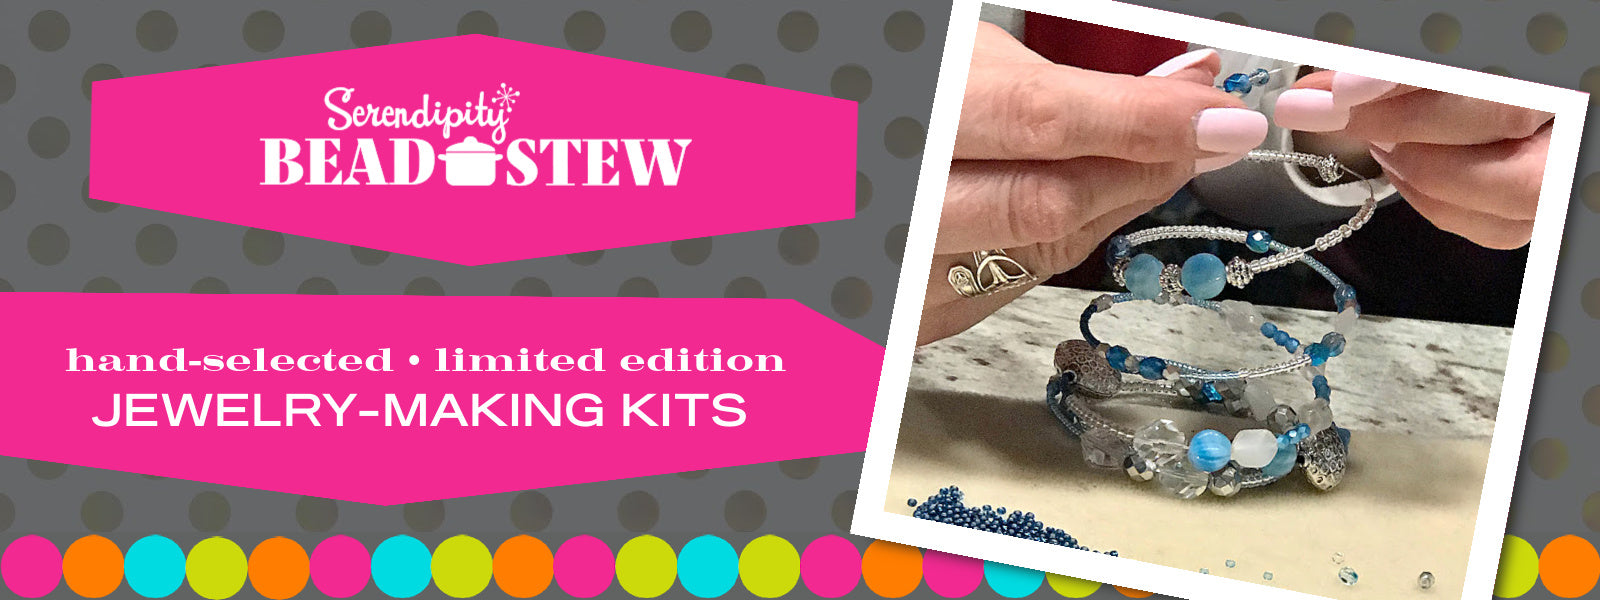 In addition to making a bangle-style bracelet with your Suzie Q Studio BEAD STEW DIY Jewelry making kit, you can also make a face mask chain which later converts to a bracelet or necklace. No experience needed.